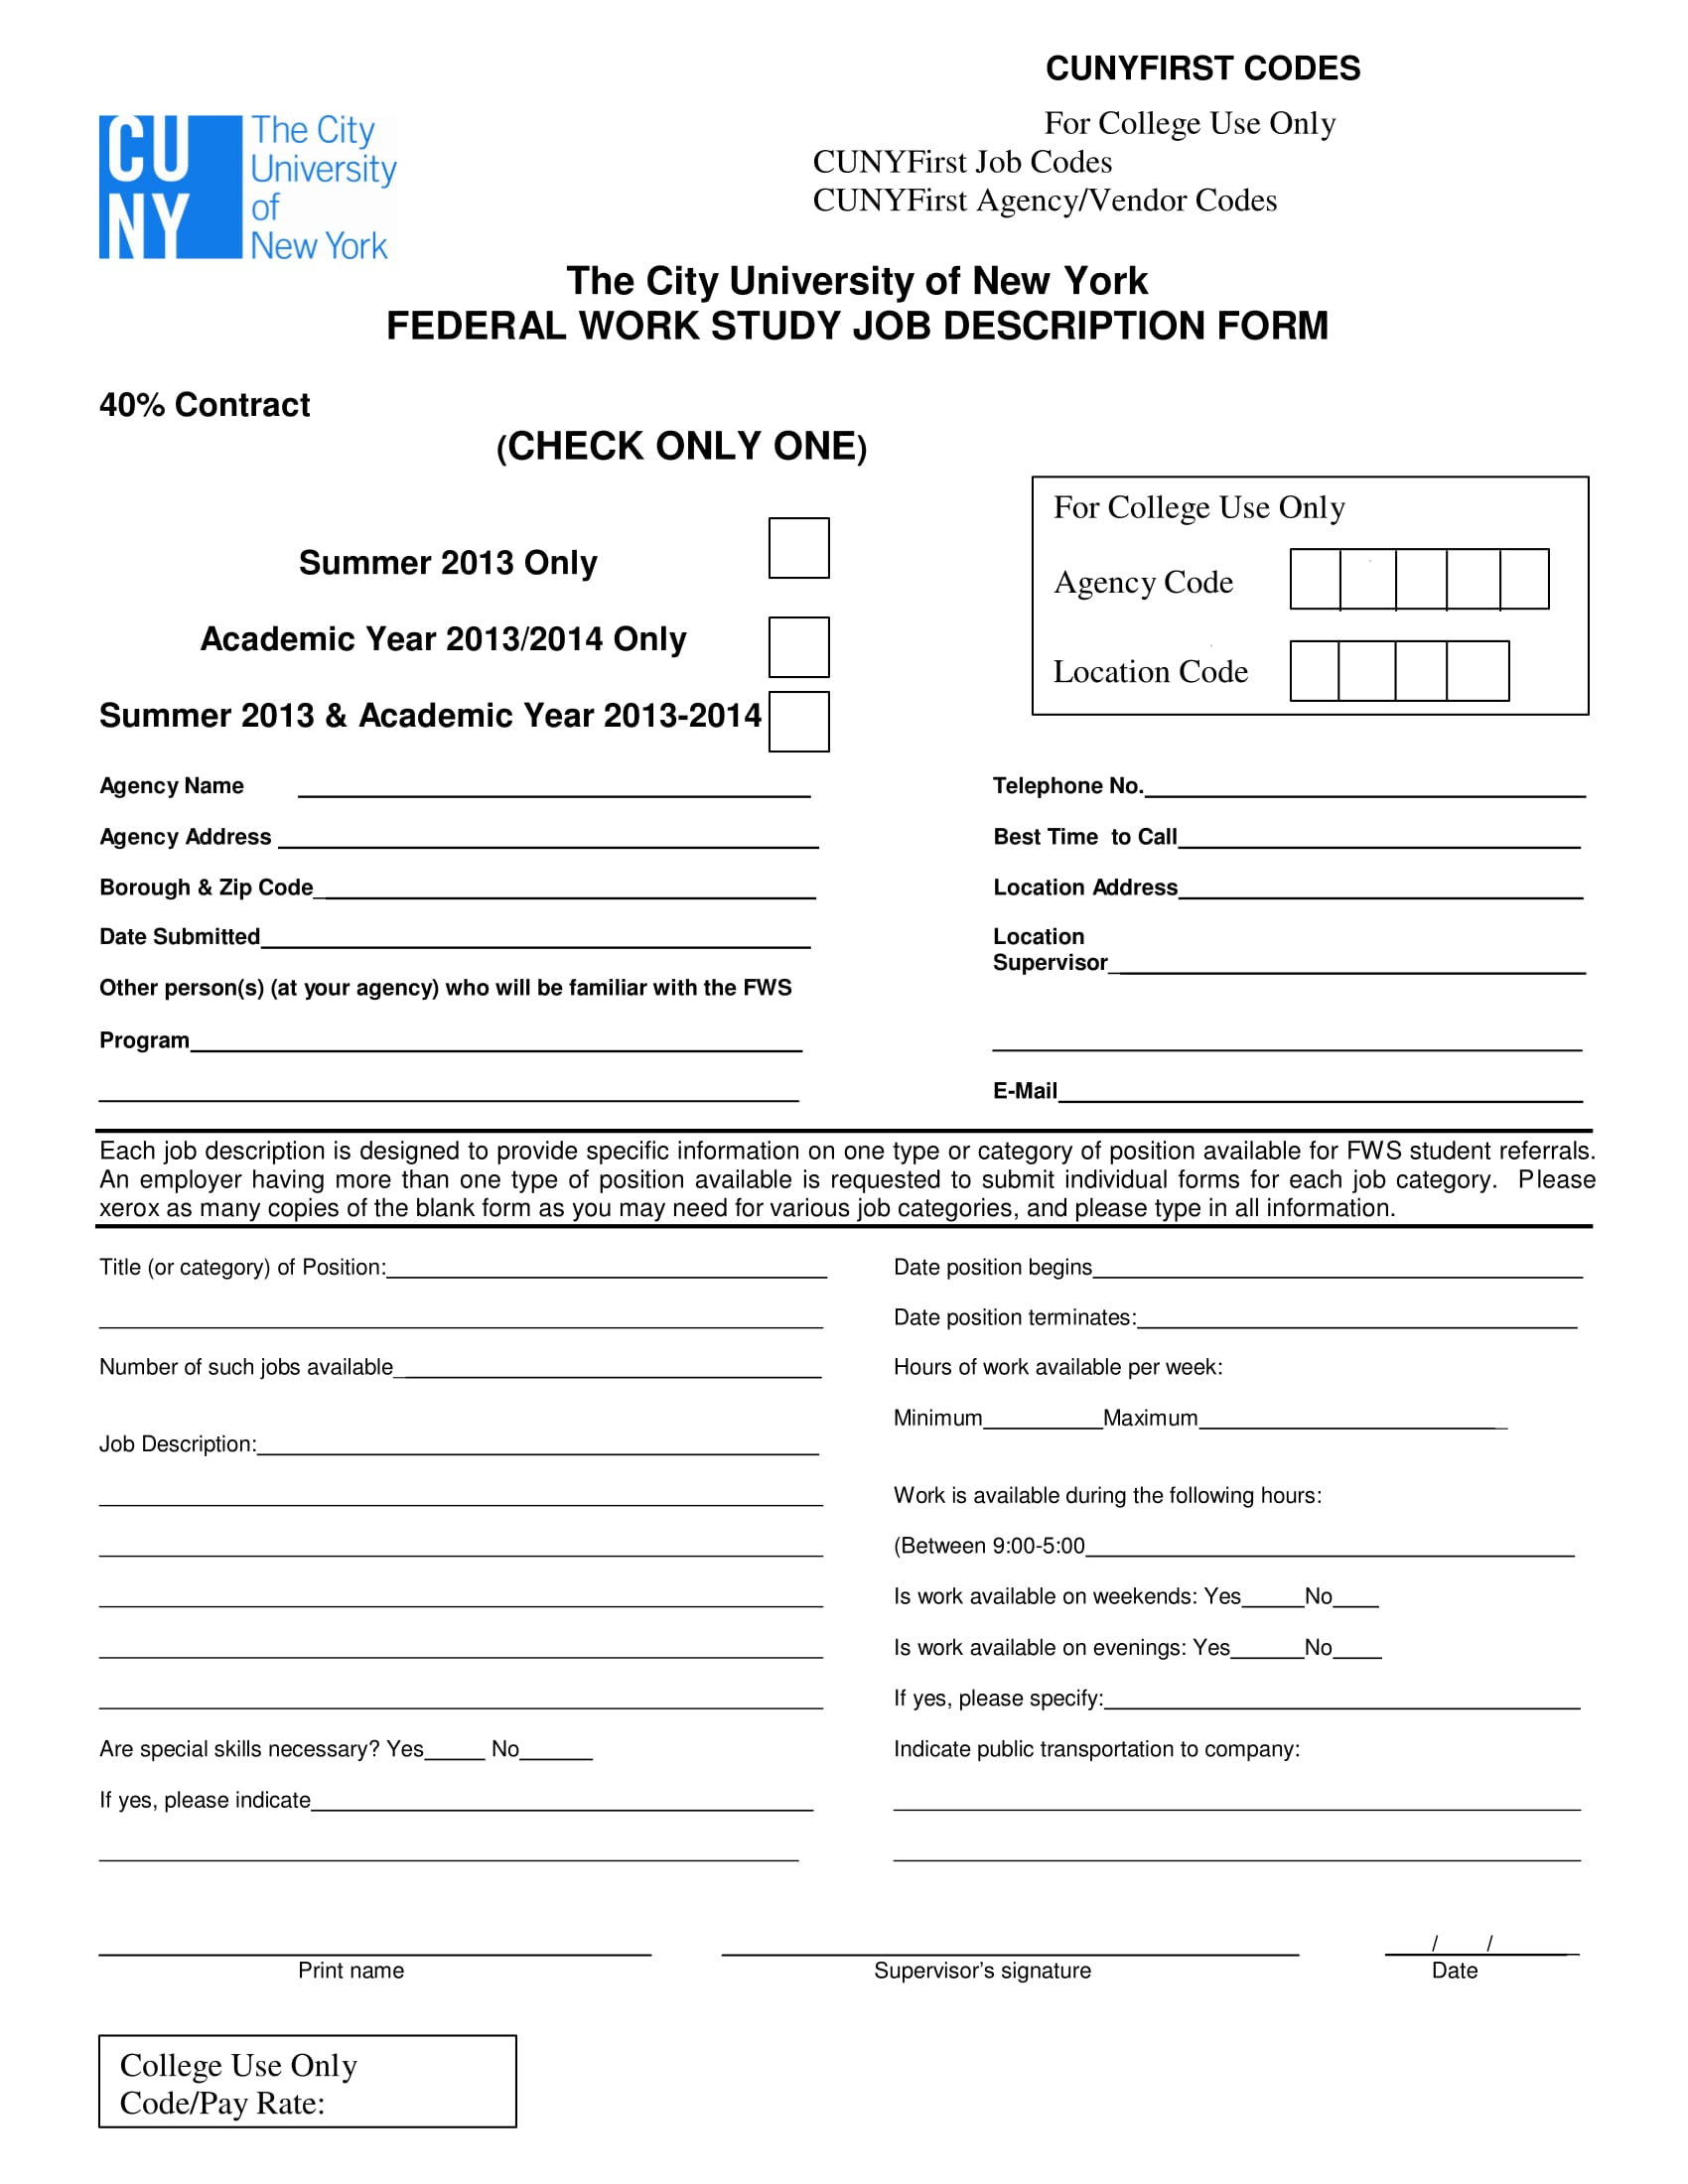 federal work study job description form 1